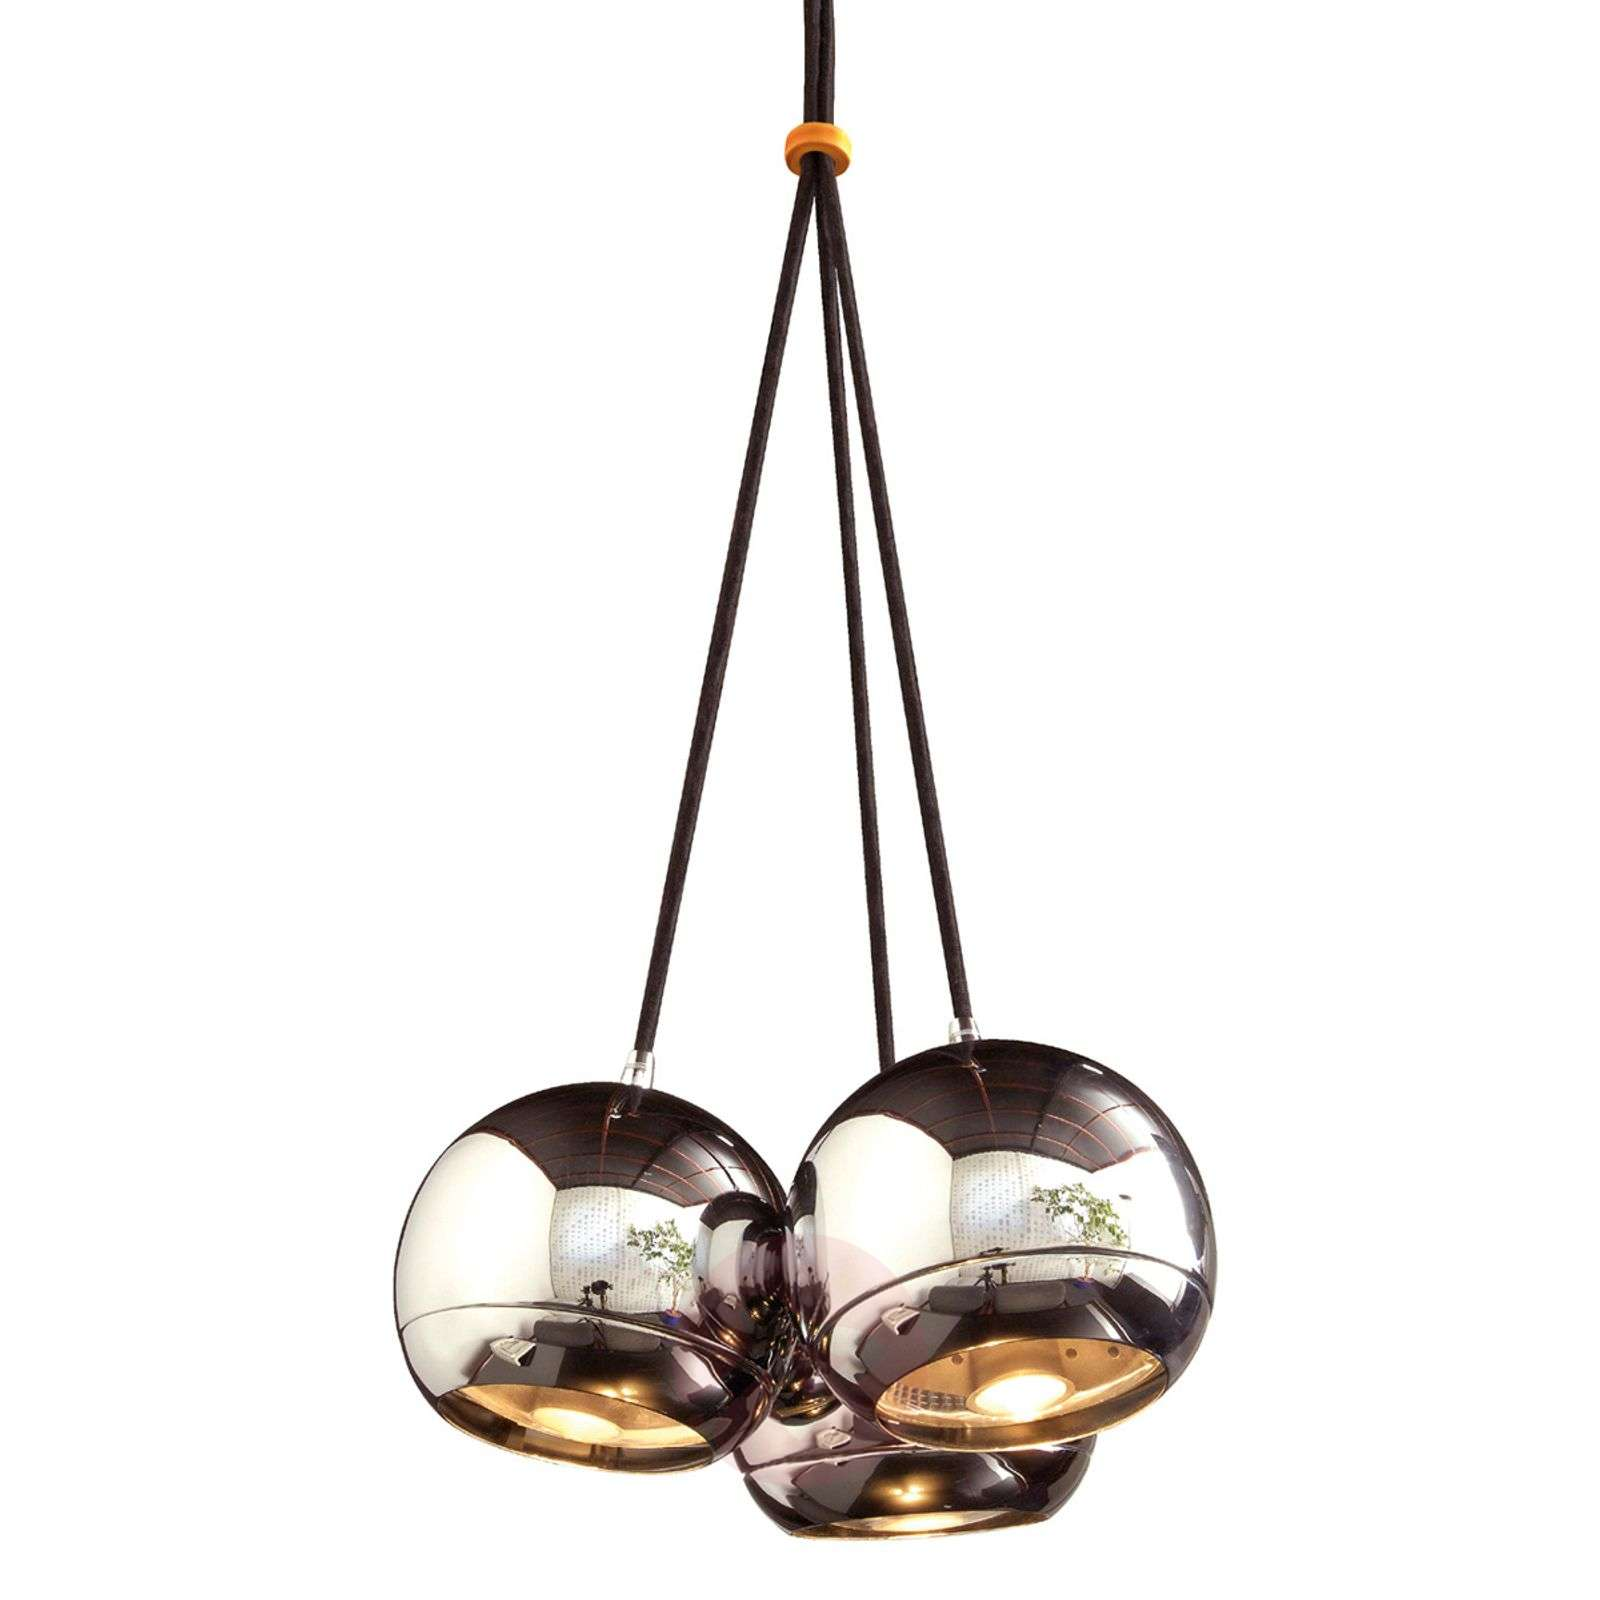 Light Eye X3 Hanging Light-5502137-01